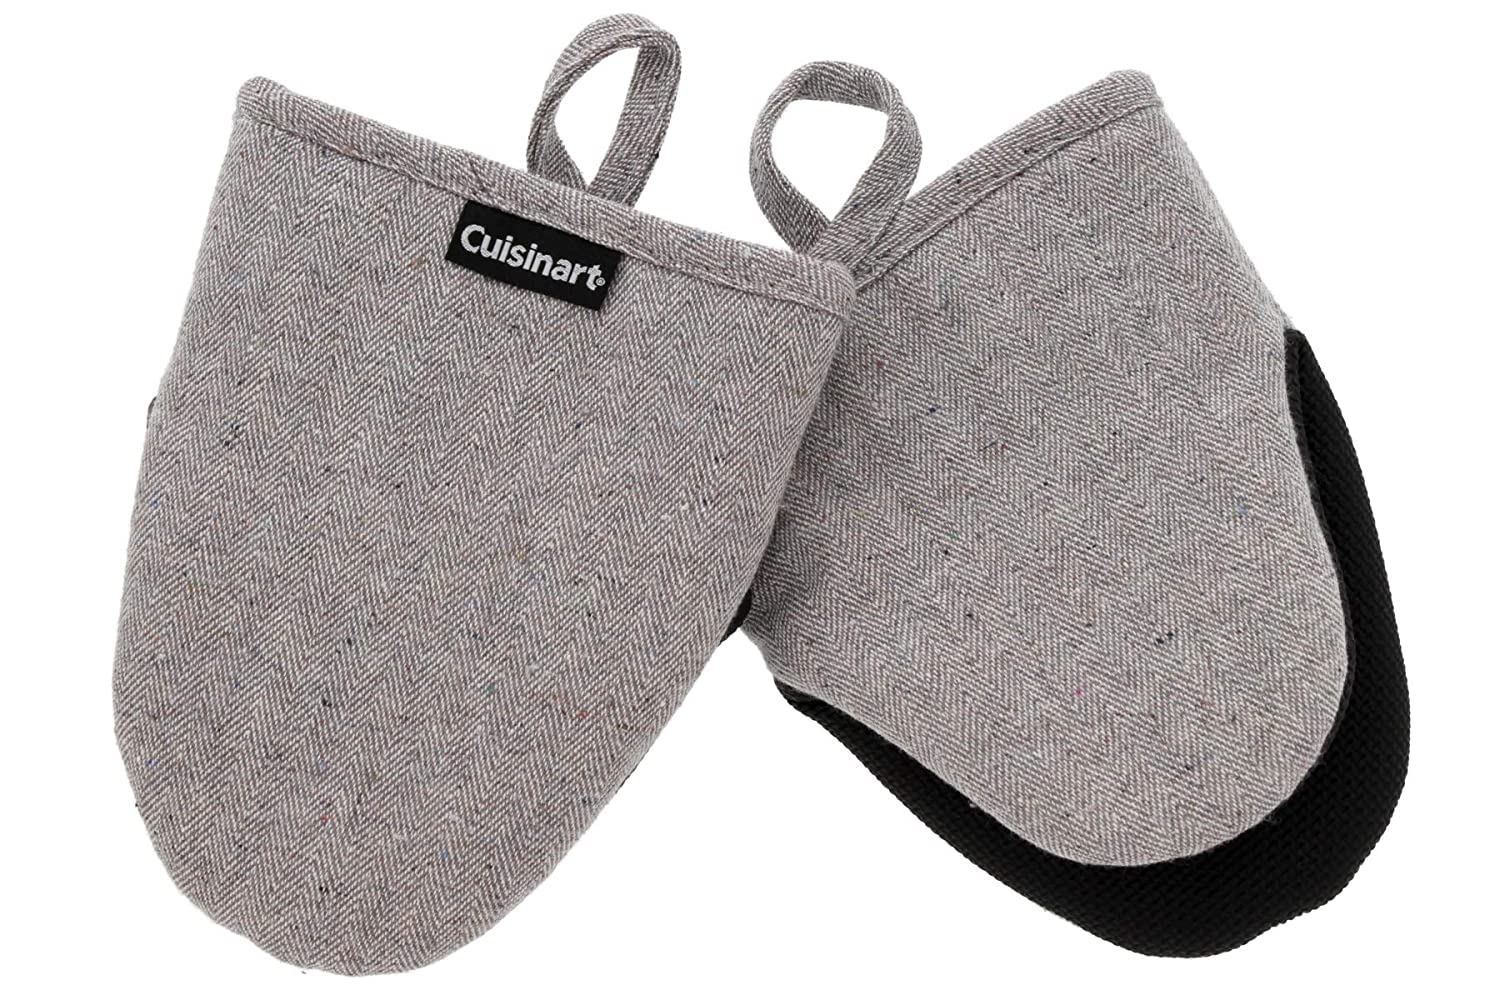 Cuisinart Oven Mitts, 2pk - Heat Resistant Oven Gloves to Protect Hands and Surfaces with Non-Slip Grip and Hanging Loop - Ideal Set for Handling Hot Cookware, Bakeware – Chevron, Grey